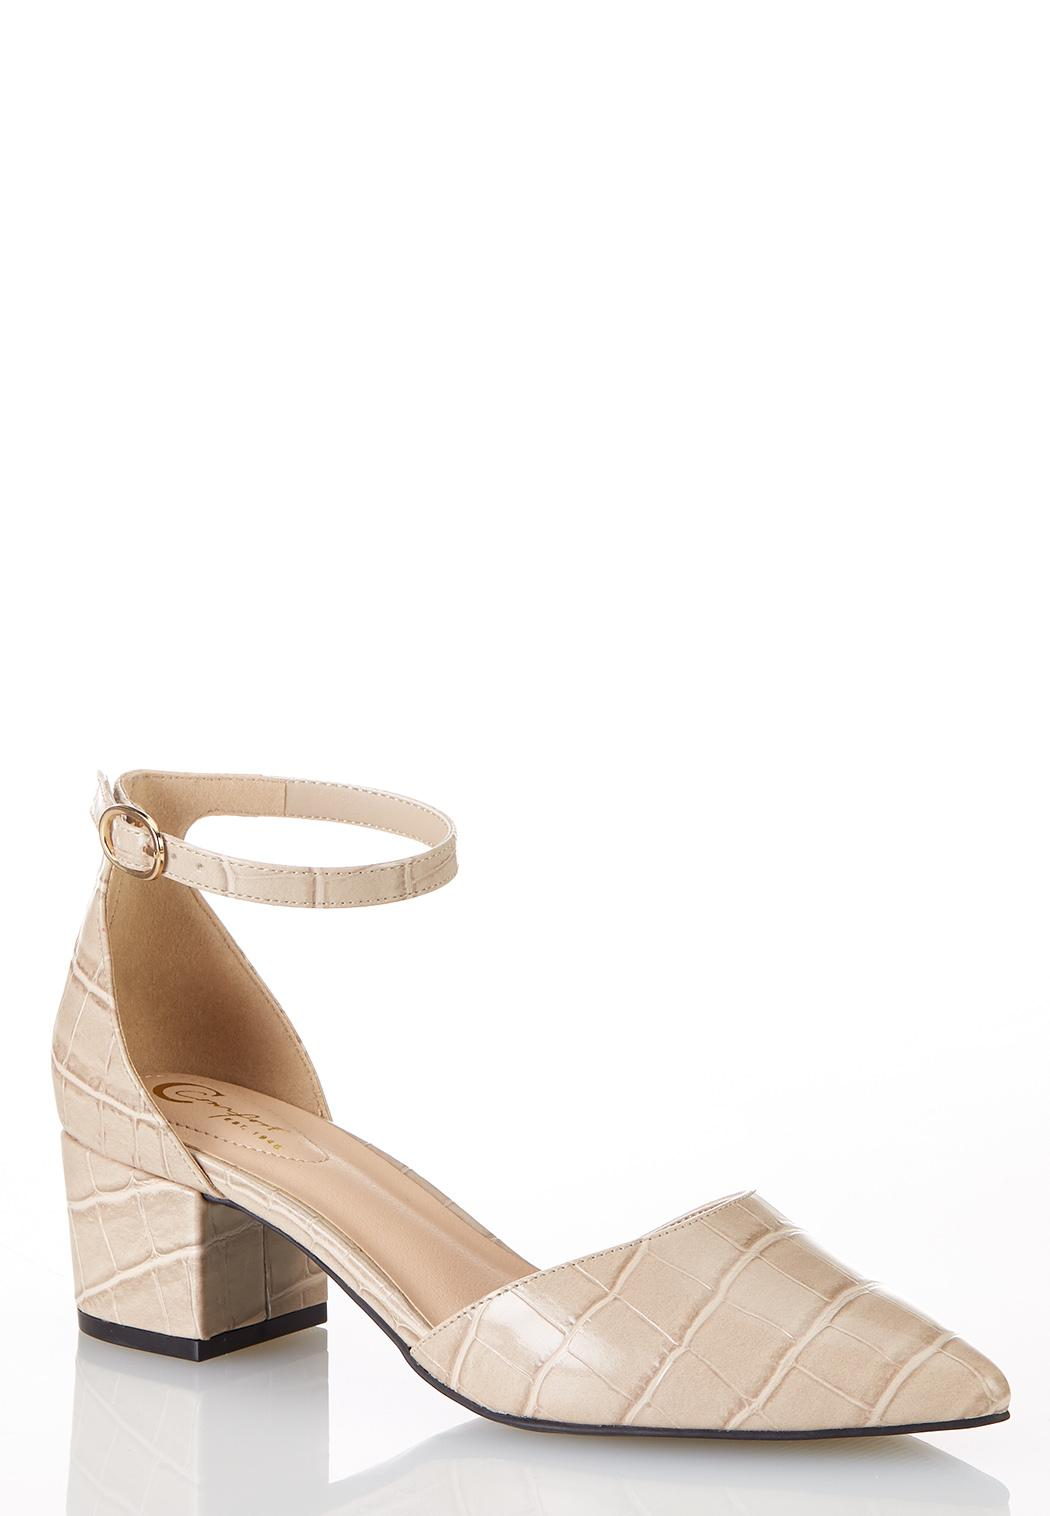 Croc Two Piece Pumps